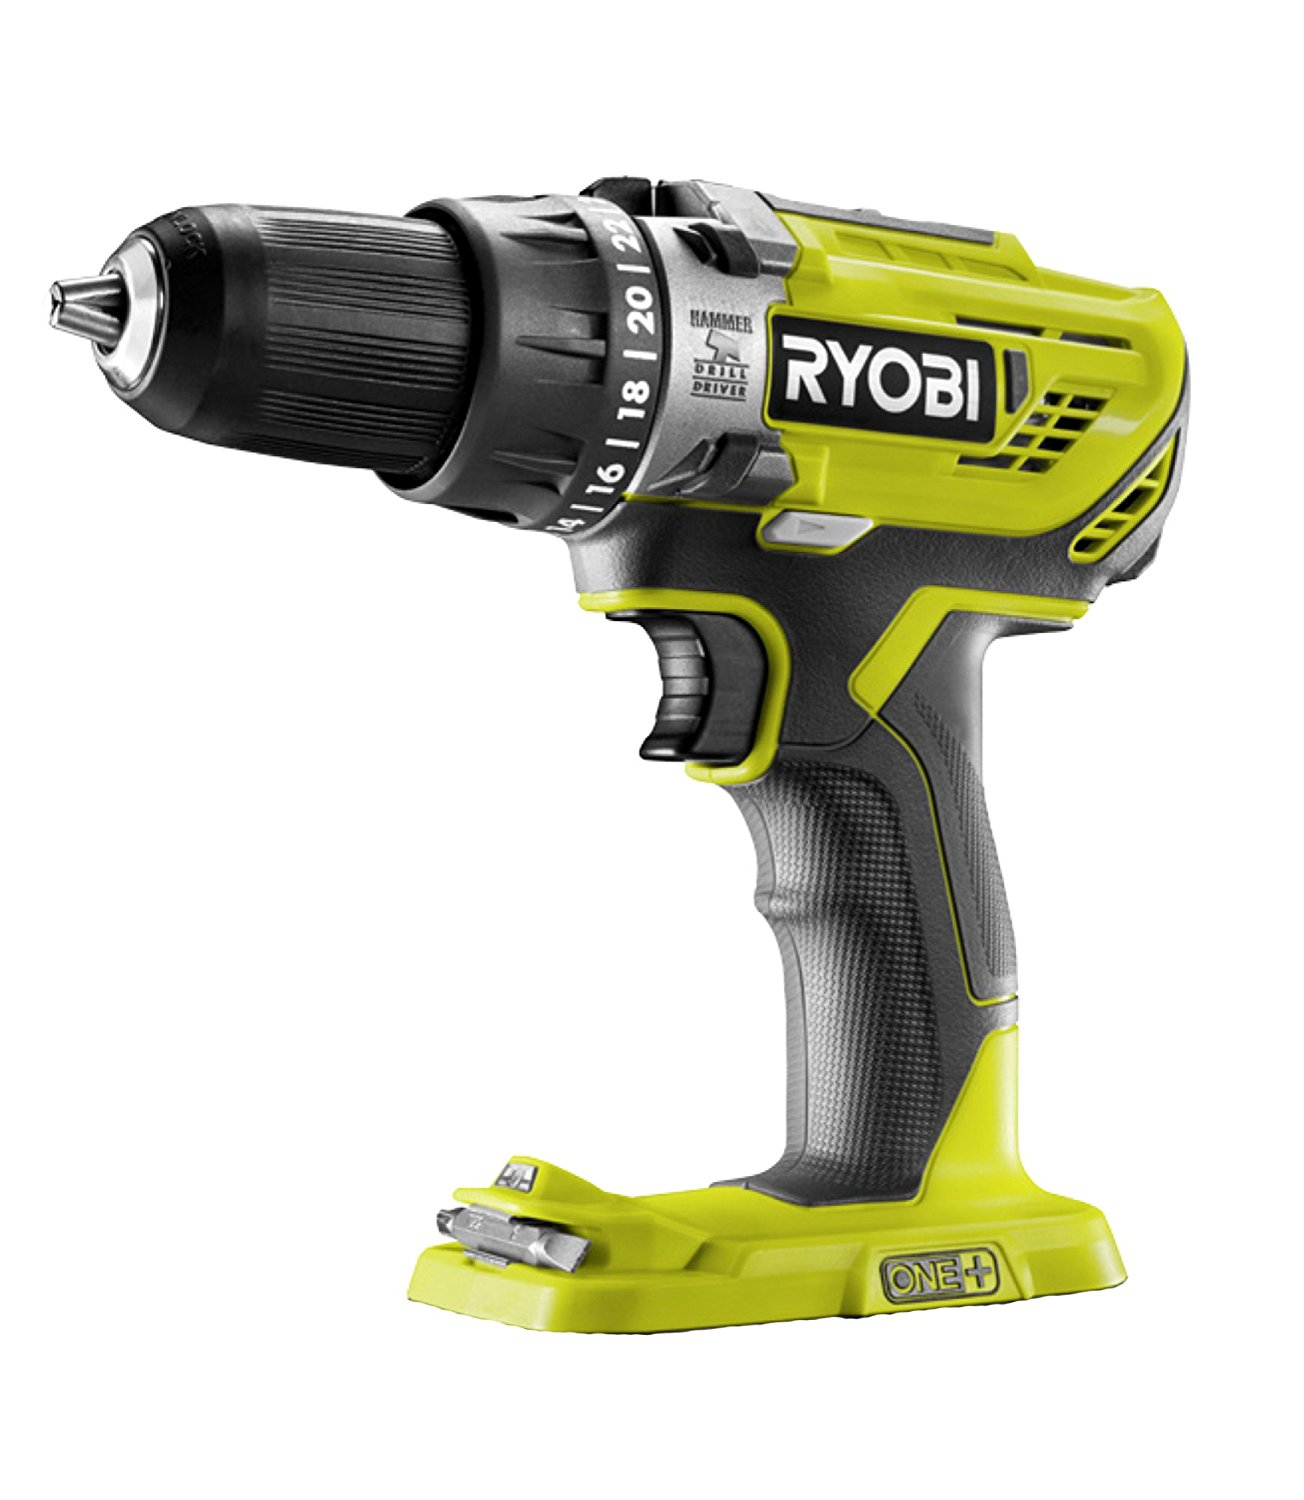 new ryobi 18v compact drills spotted in the uk - tool craze